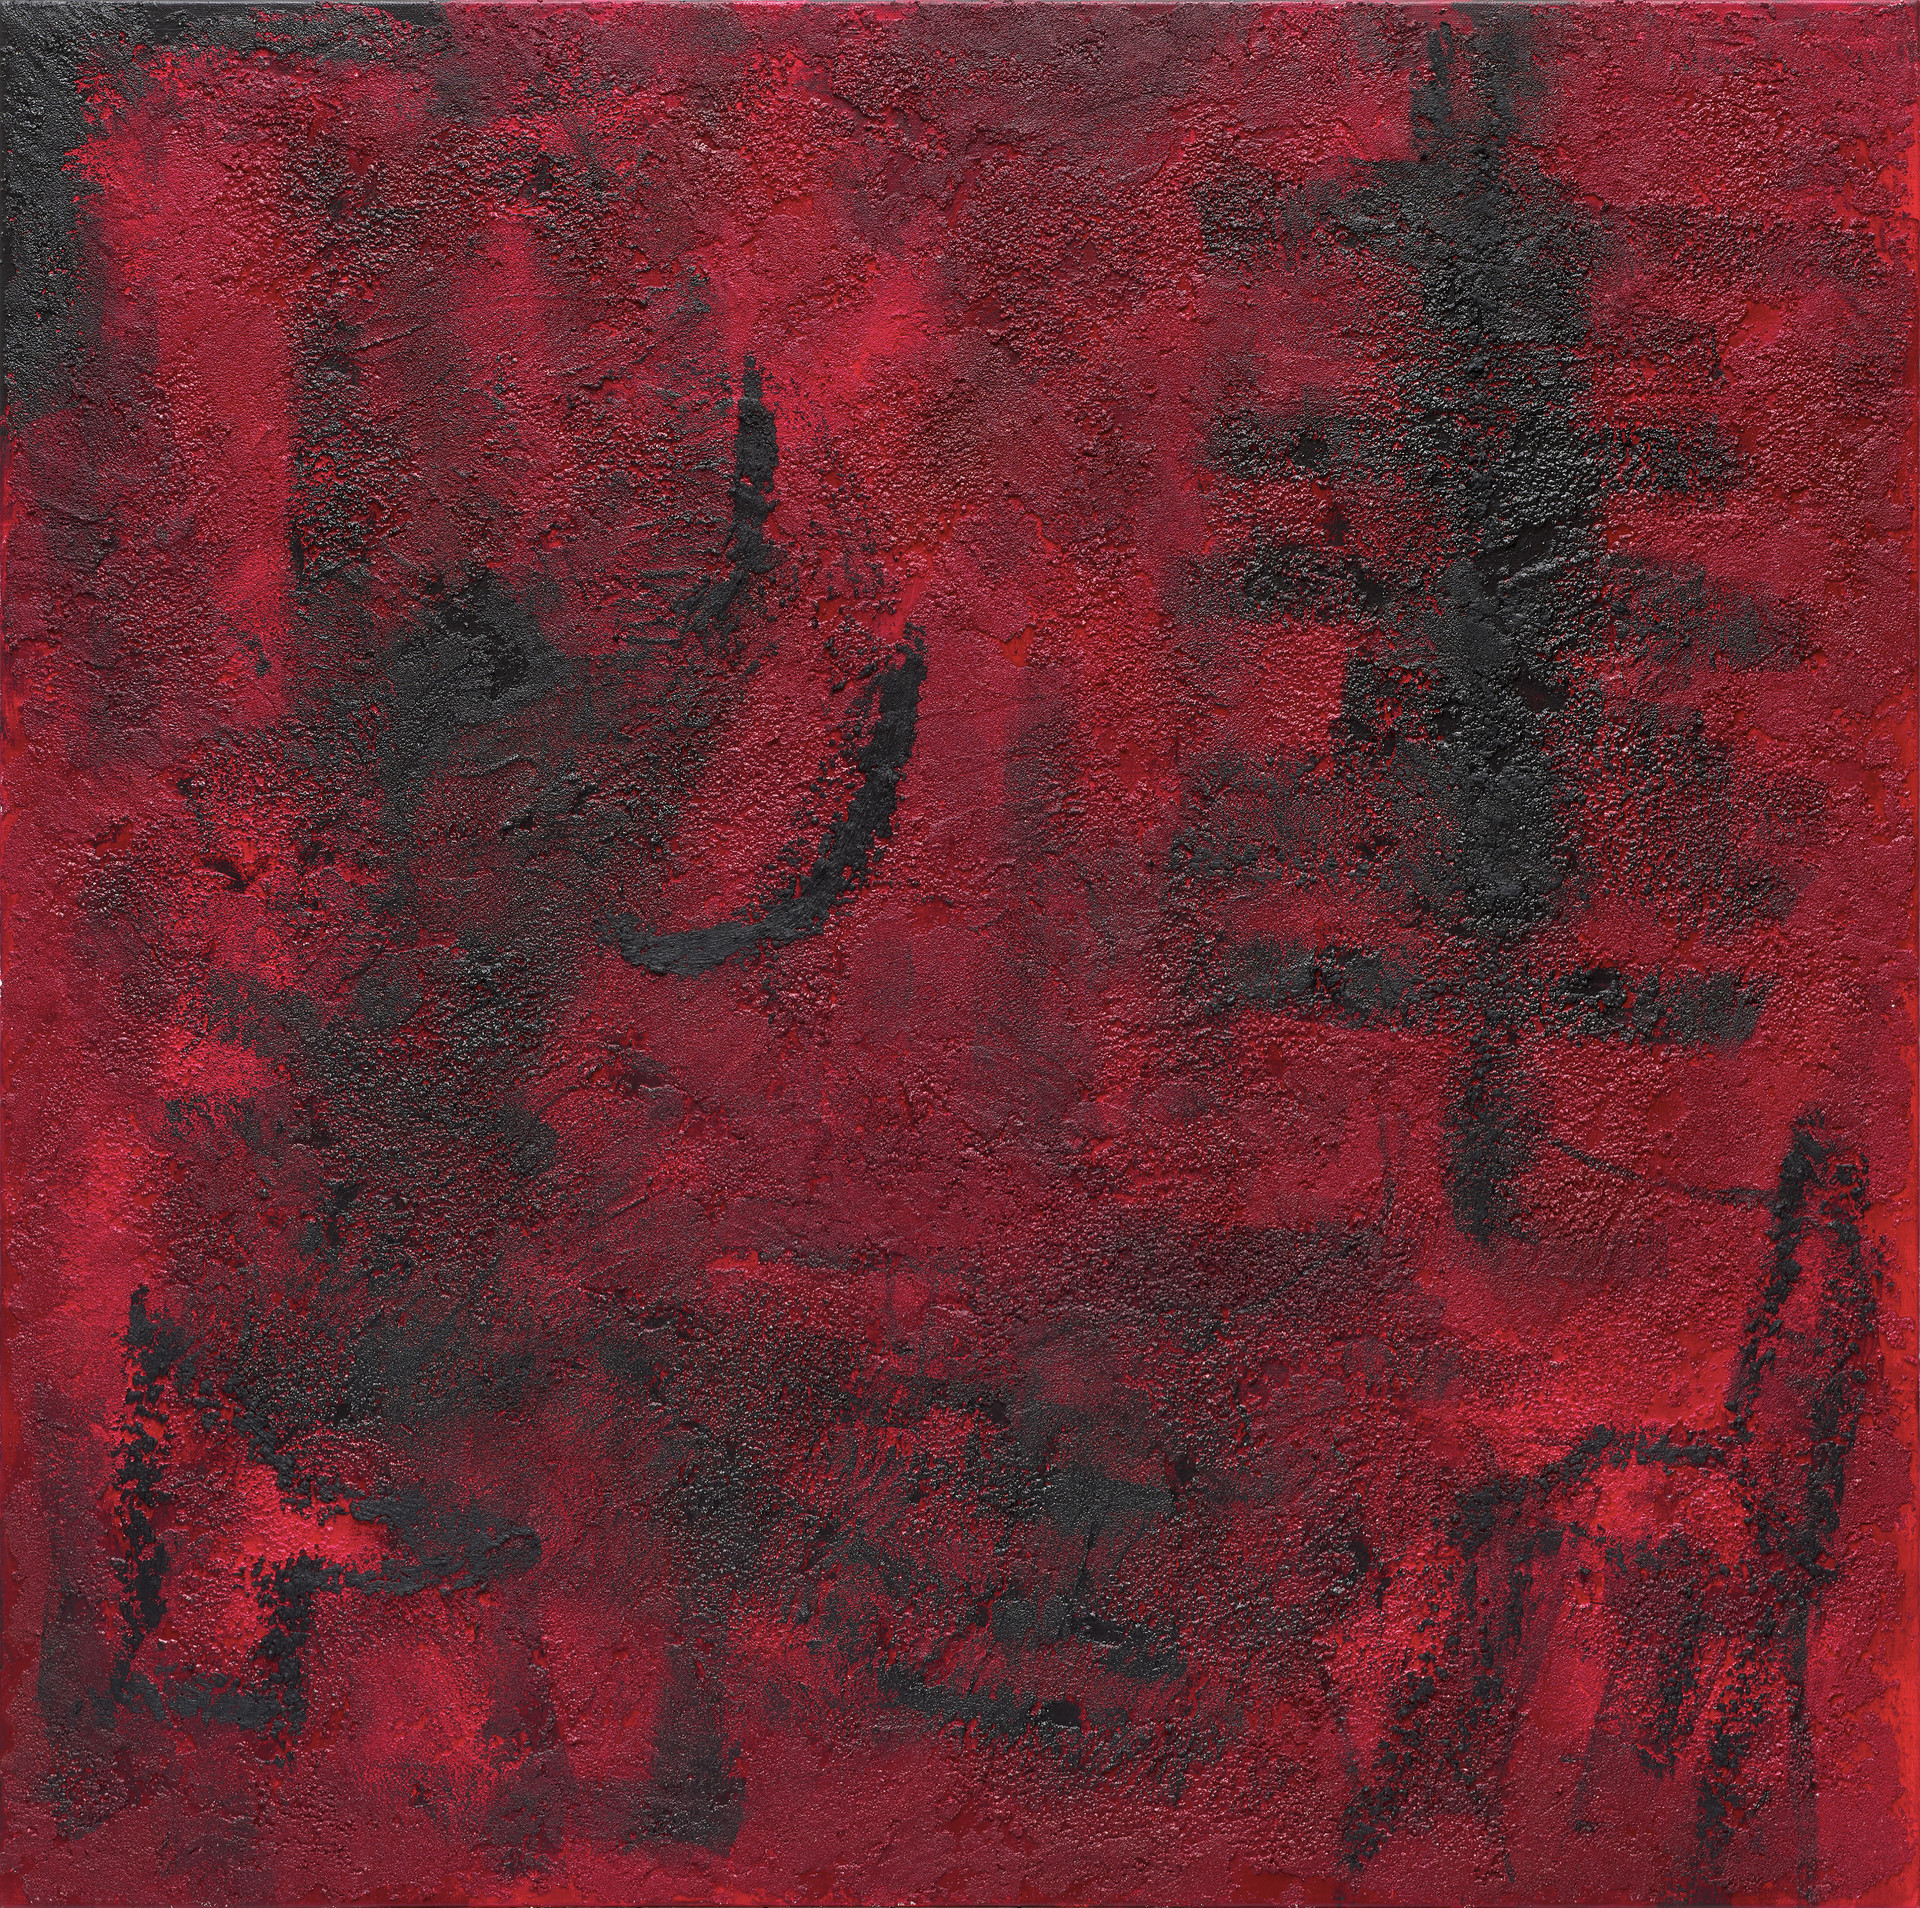 """""""Scar"""" / 2020 / 34inx35in / mixed media on canvas"""